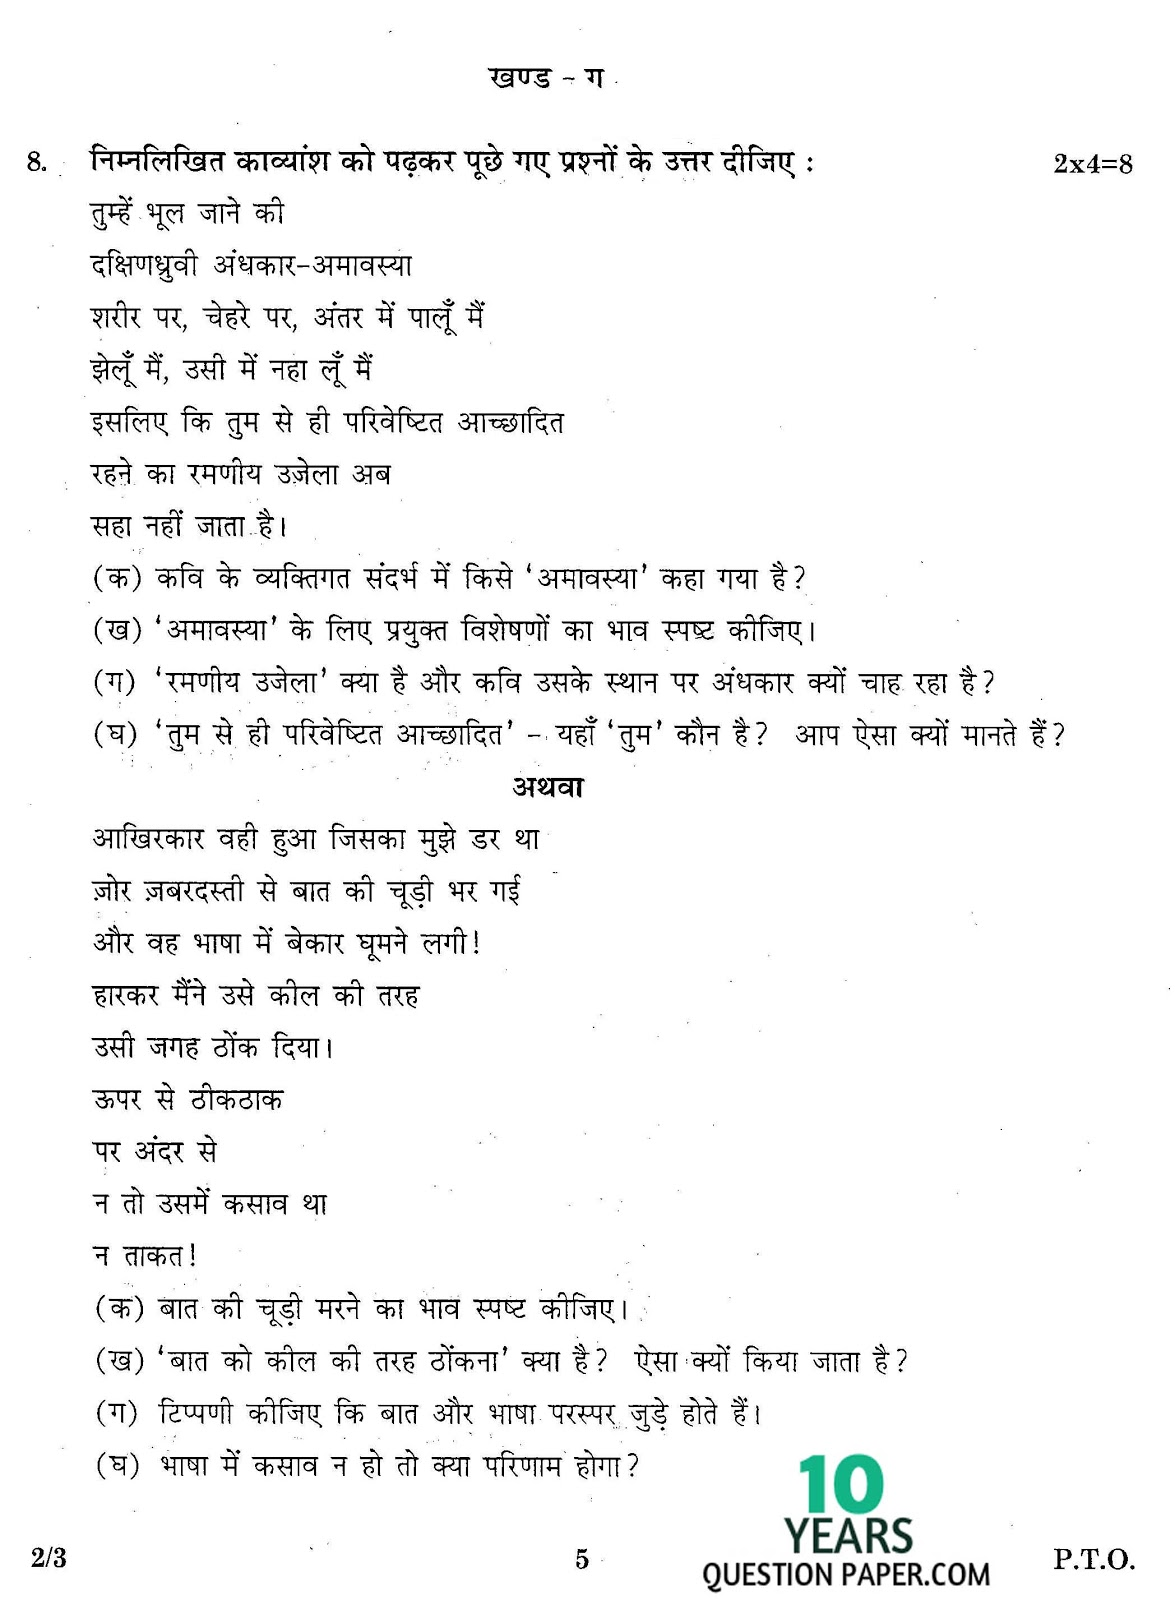 Worksheet Comprehension Passages For Grade 3 With Questions hindi unseen passage for grade 4 reading comprehension cbse 2016 core class 12 board question paper set 3 10